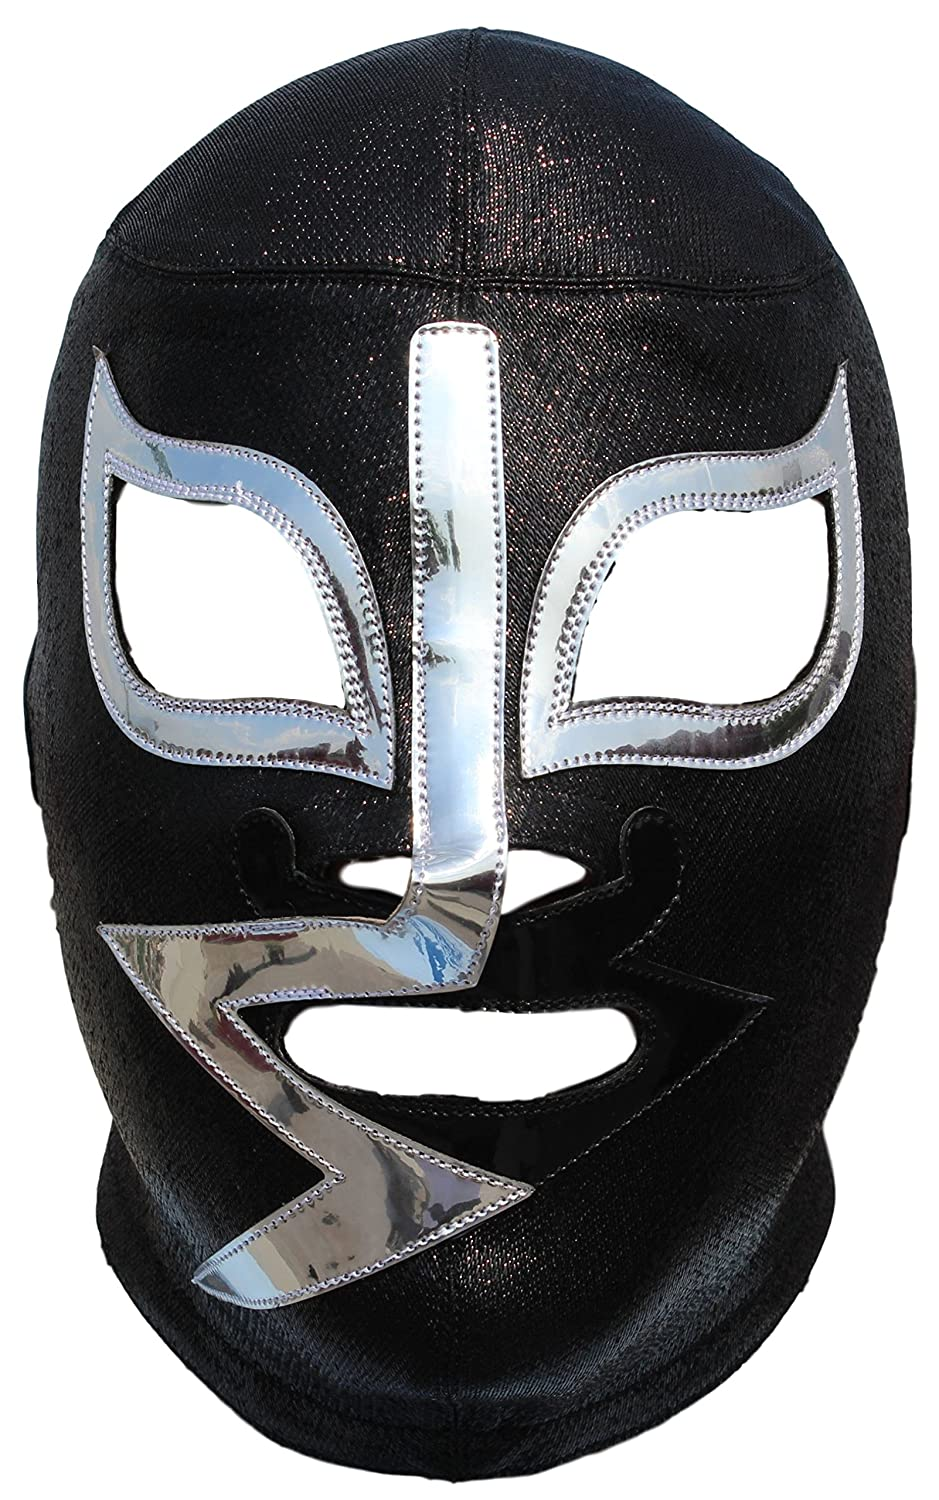 Amazon.com: Deportes Martinez Rayo de Jalisco Professional Lucha Libre Mask Adult Luchador Mask: Clothing